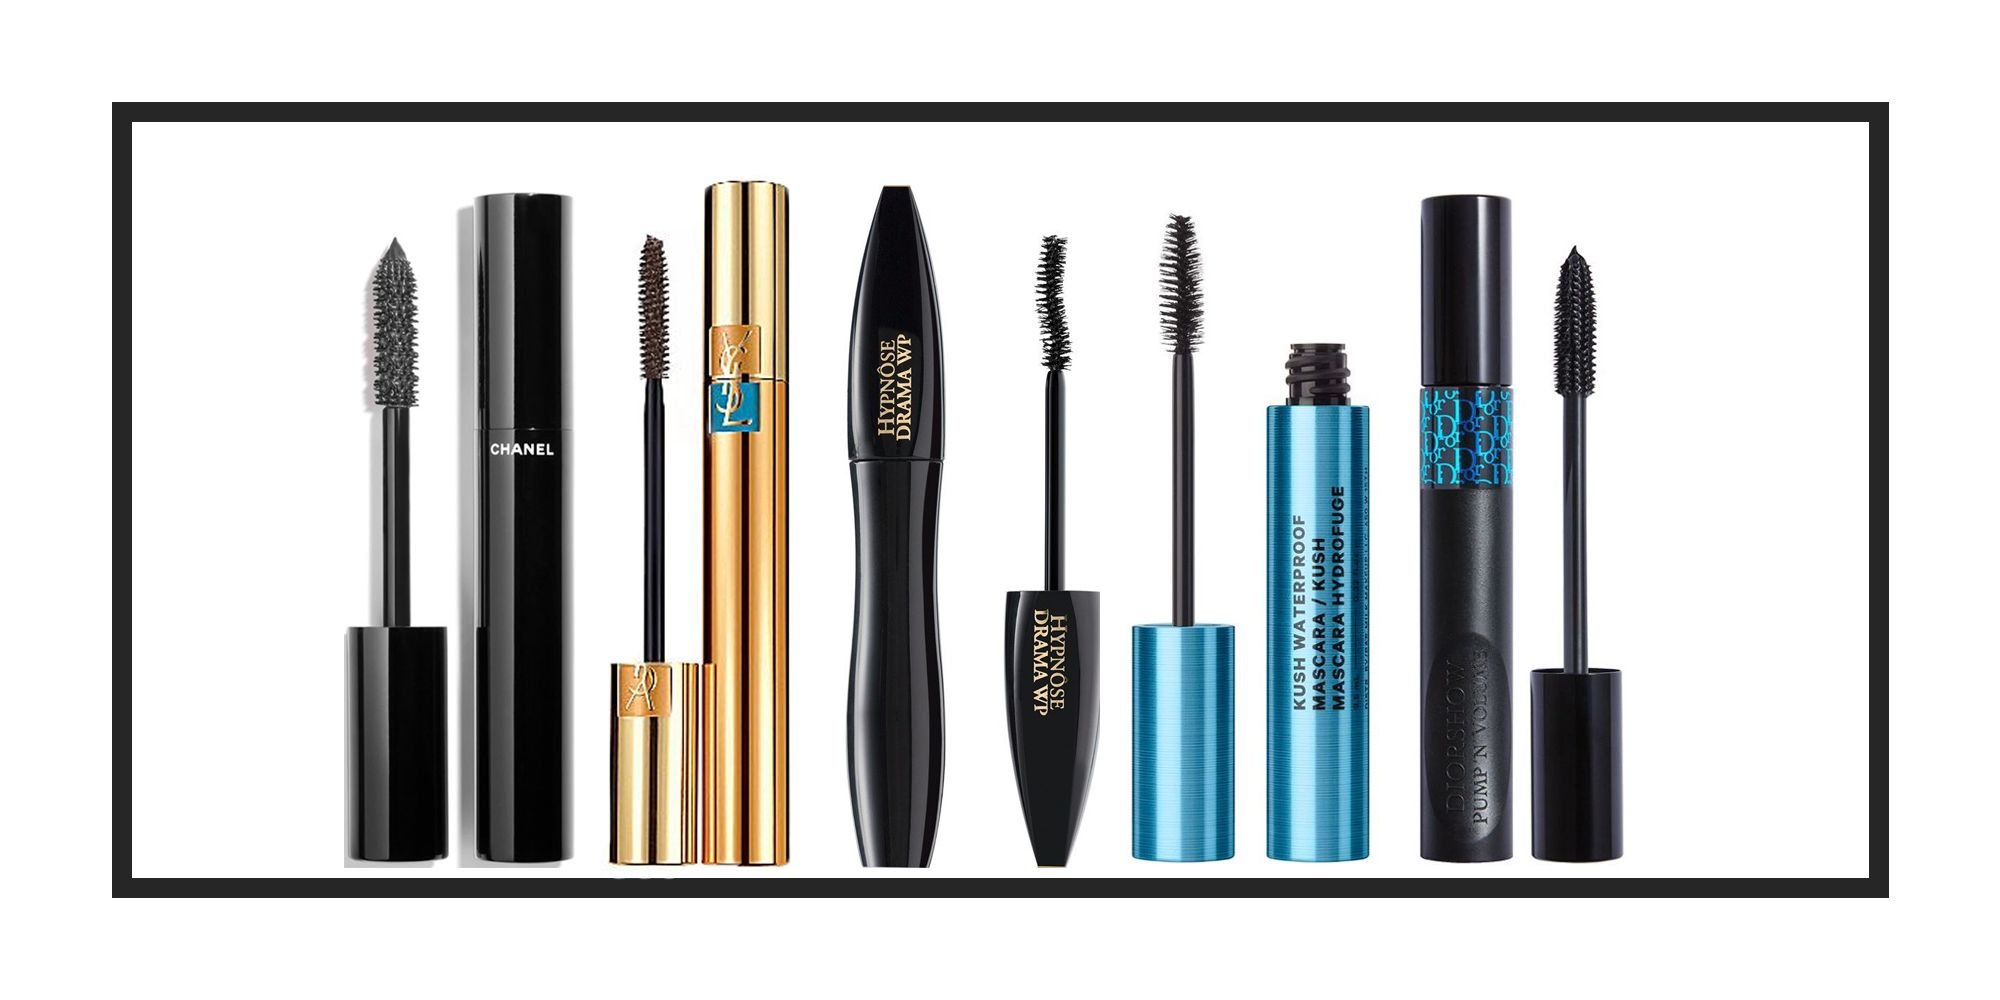 The best waterproof mascaras to try this summer